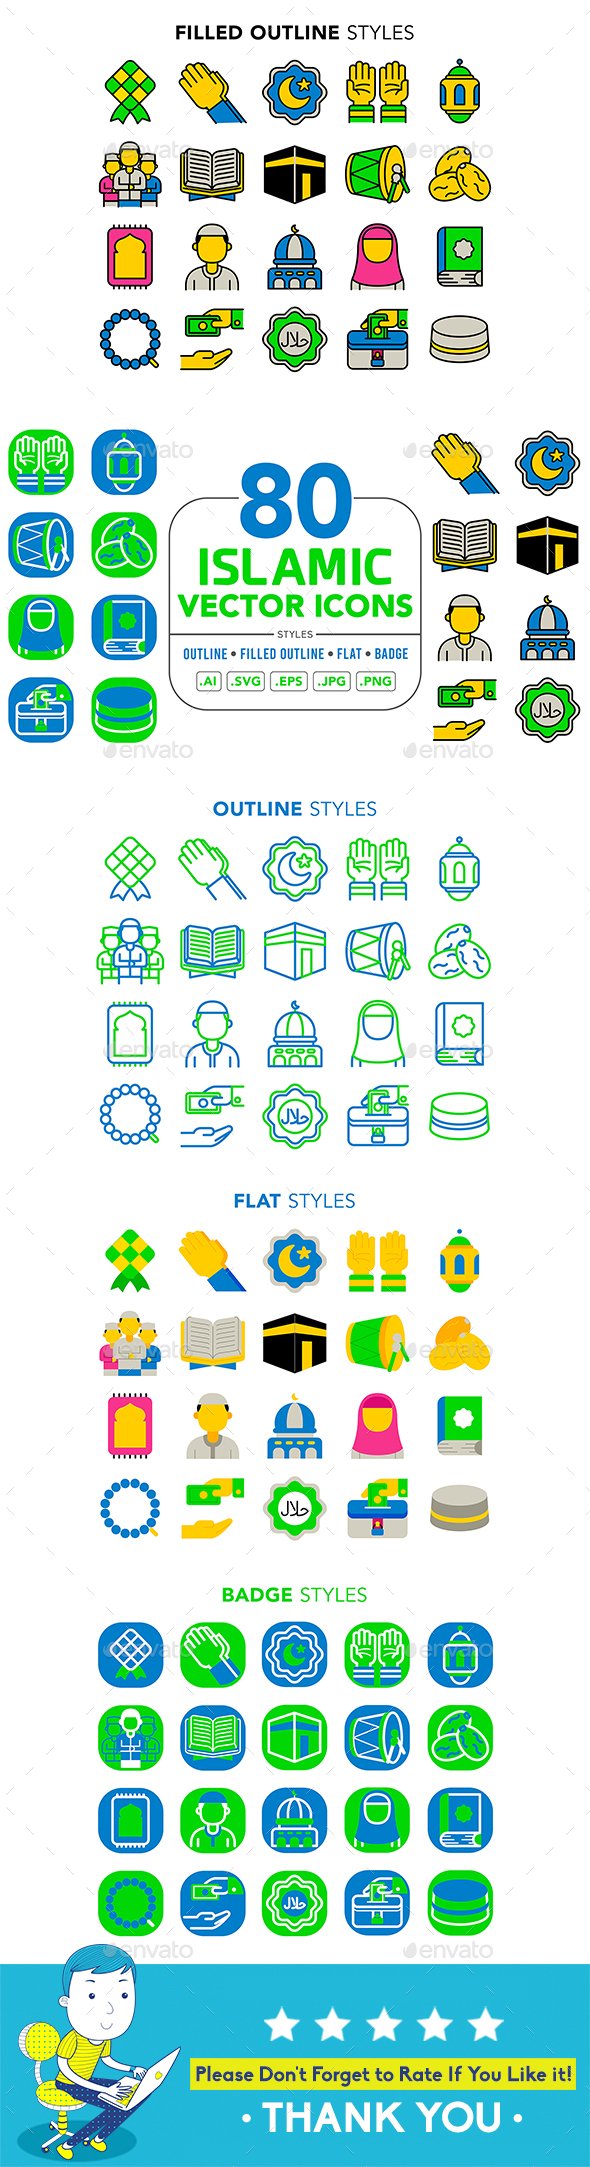 Islamic Vector Icons